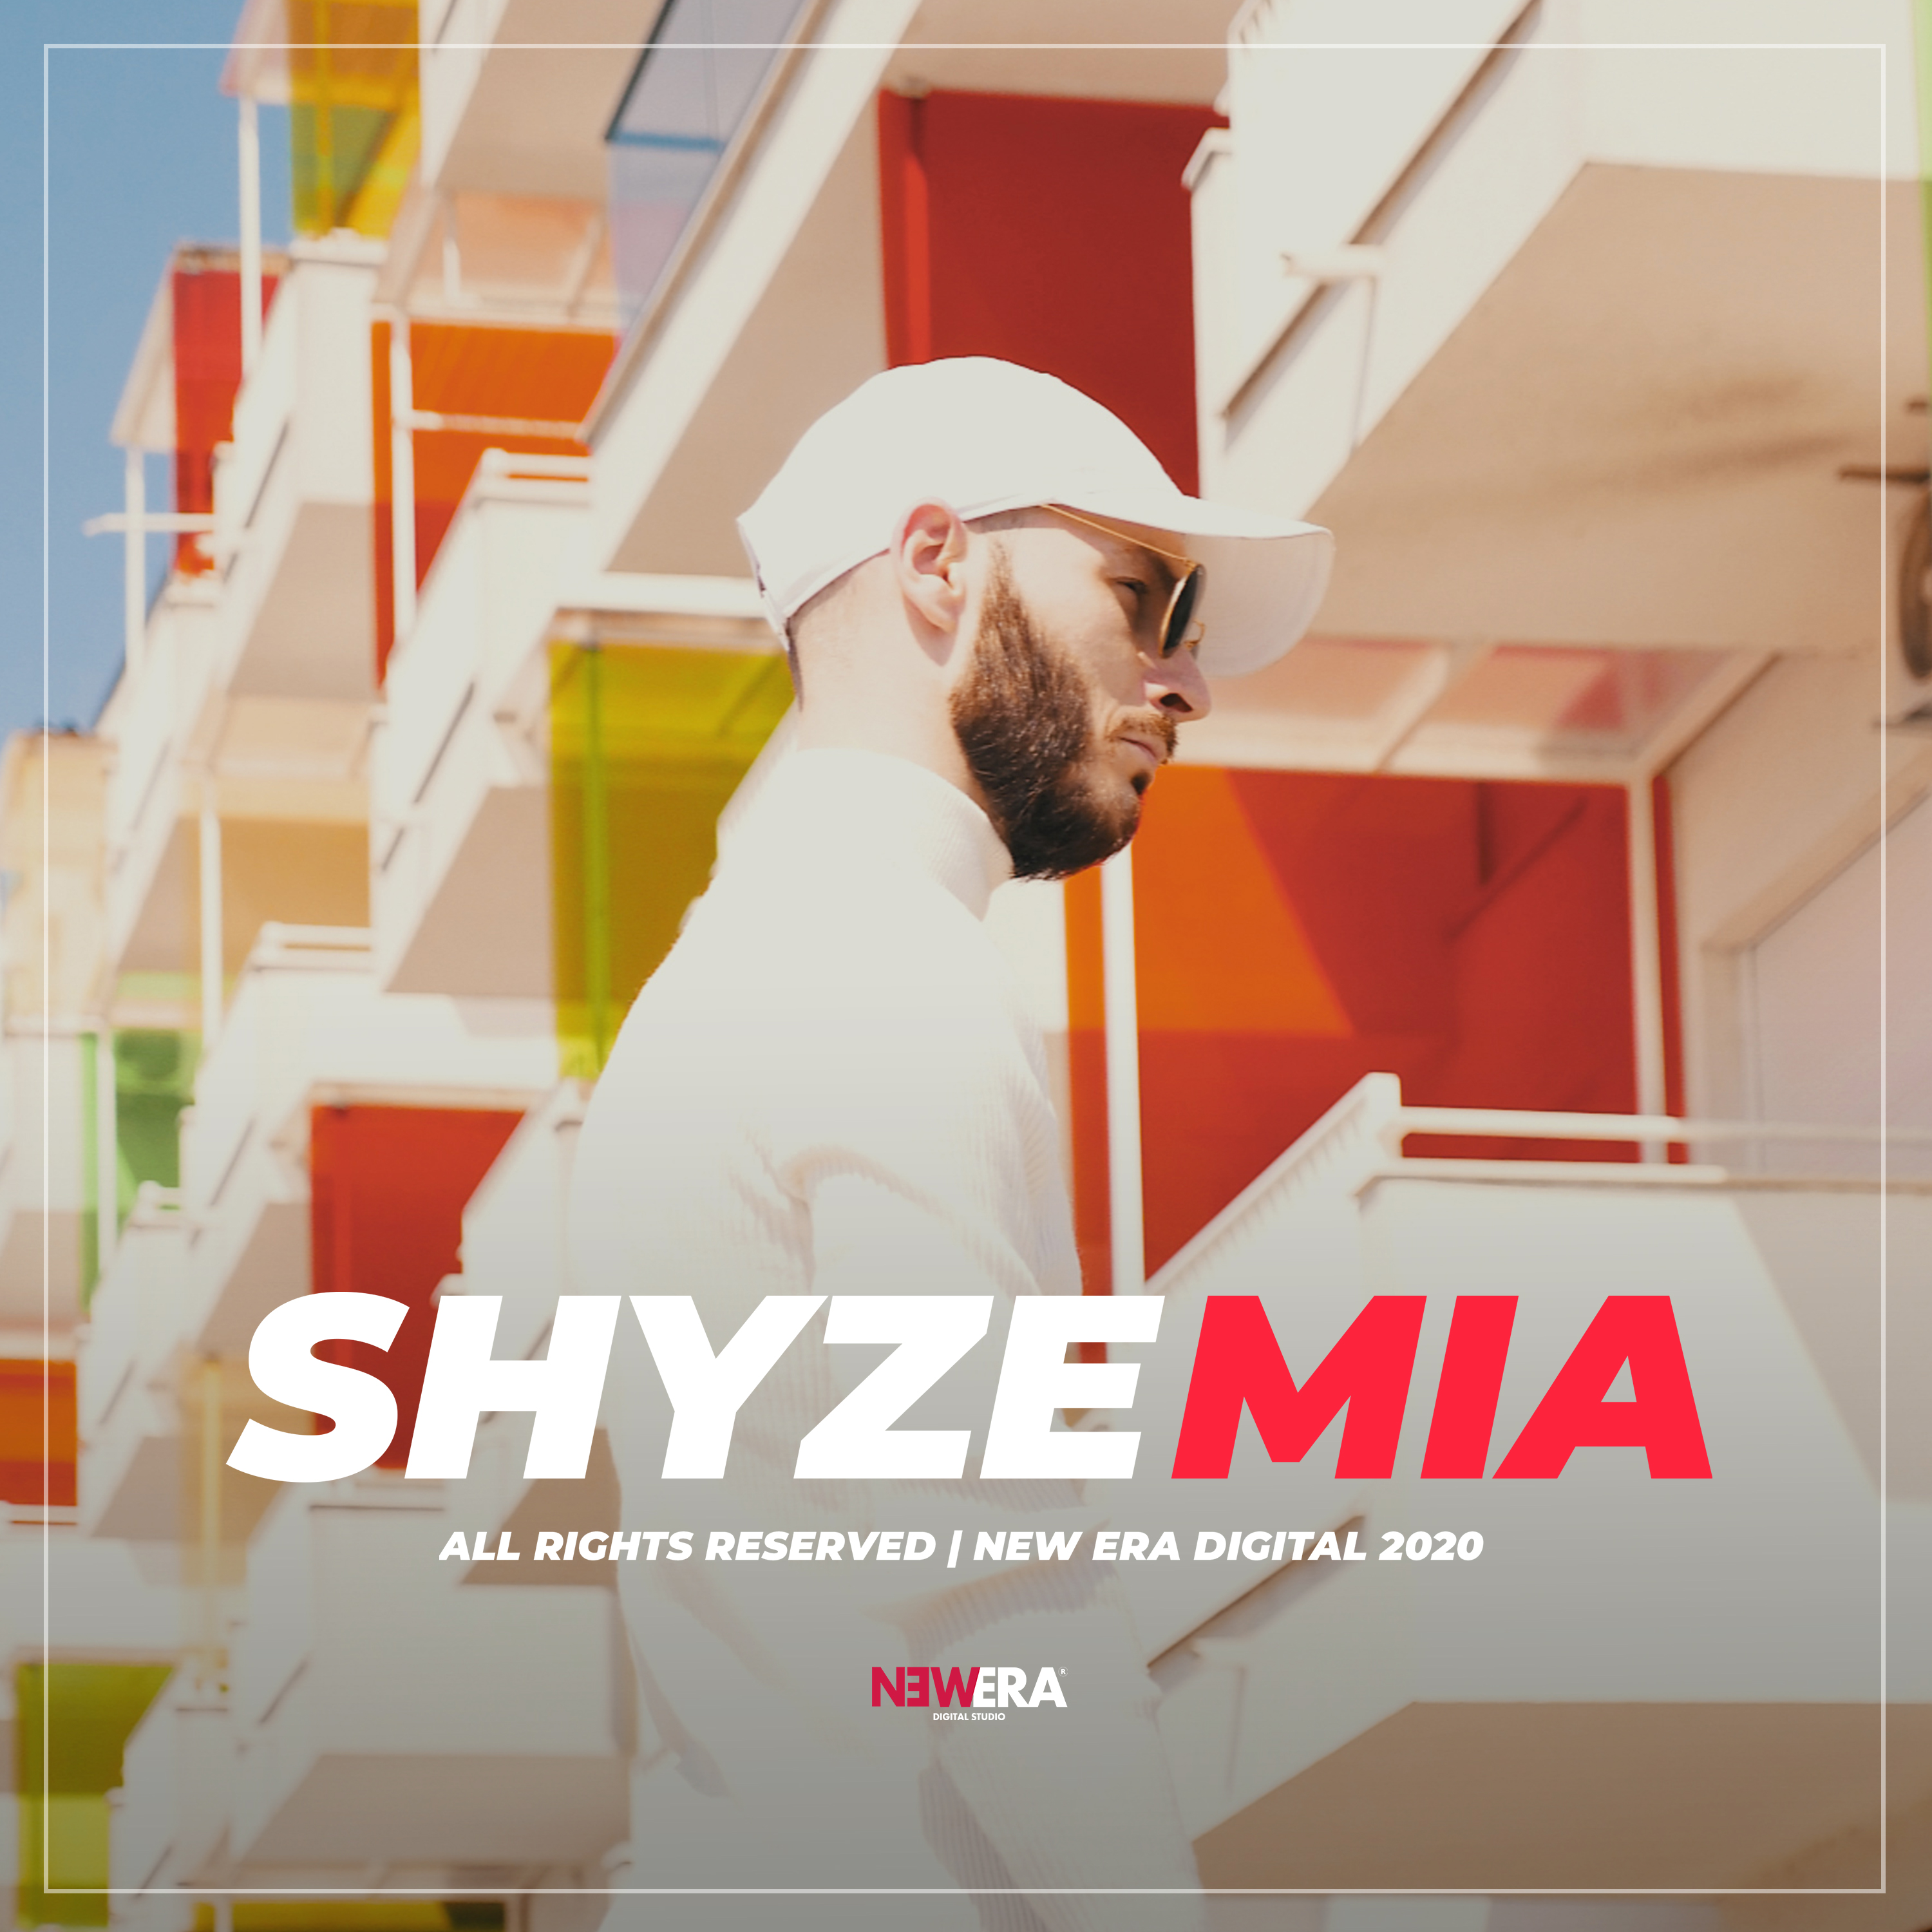 Shyze - Mia - Listen on Spotify, Deezer, YouTube, Google Play Music and Buy on Amazon, iTunes Google Play | EMDC Network